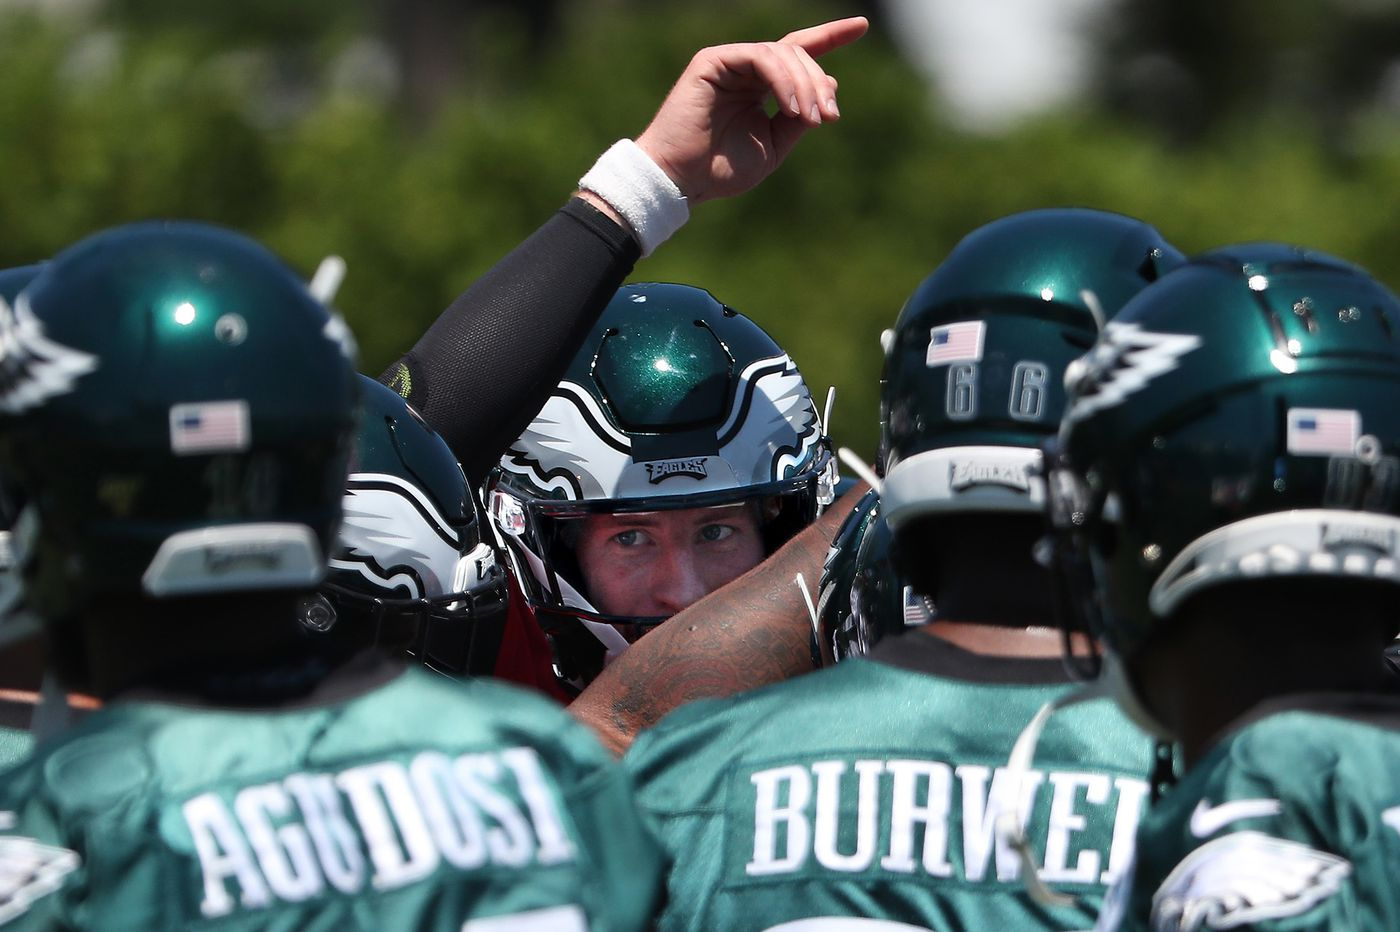 Eagles training camp 2019: Key dates, what we'll learn and more